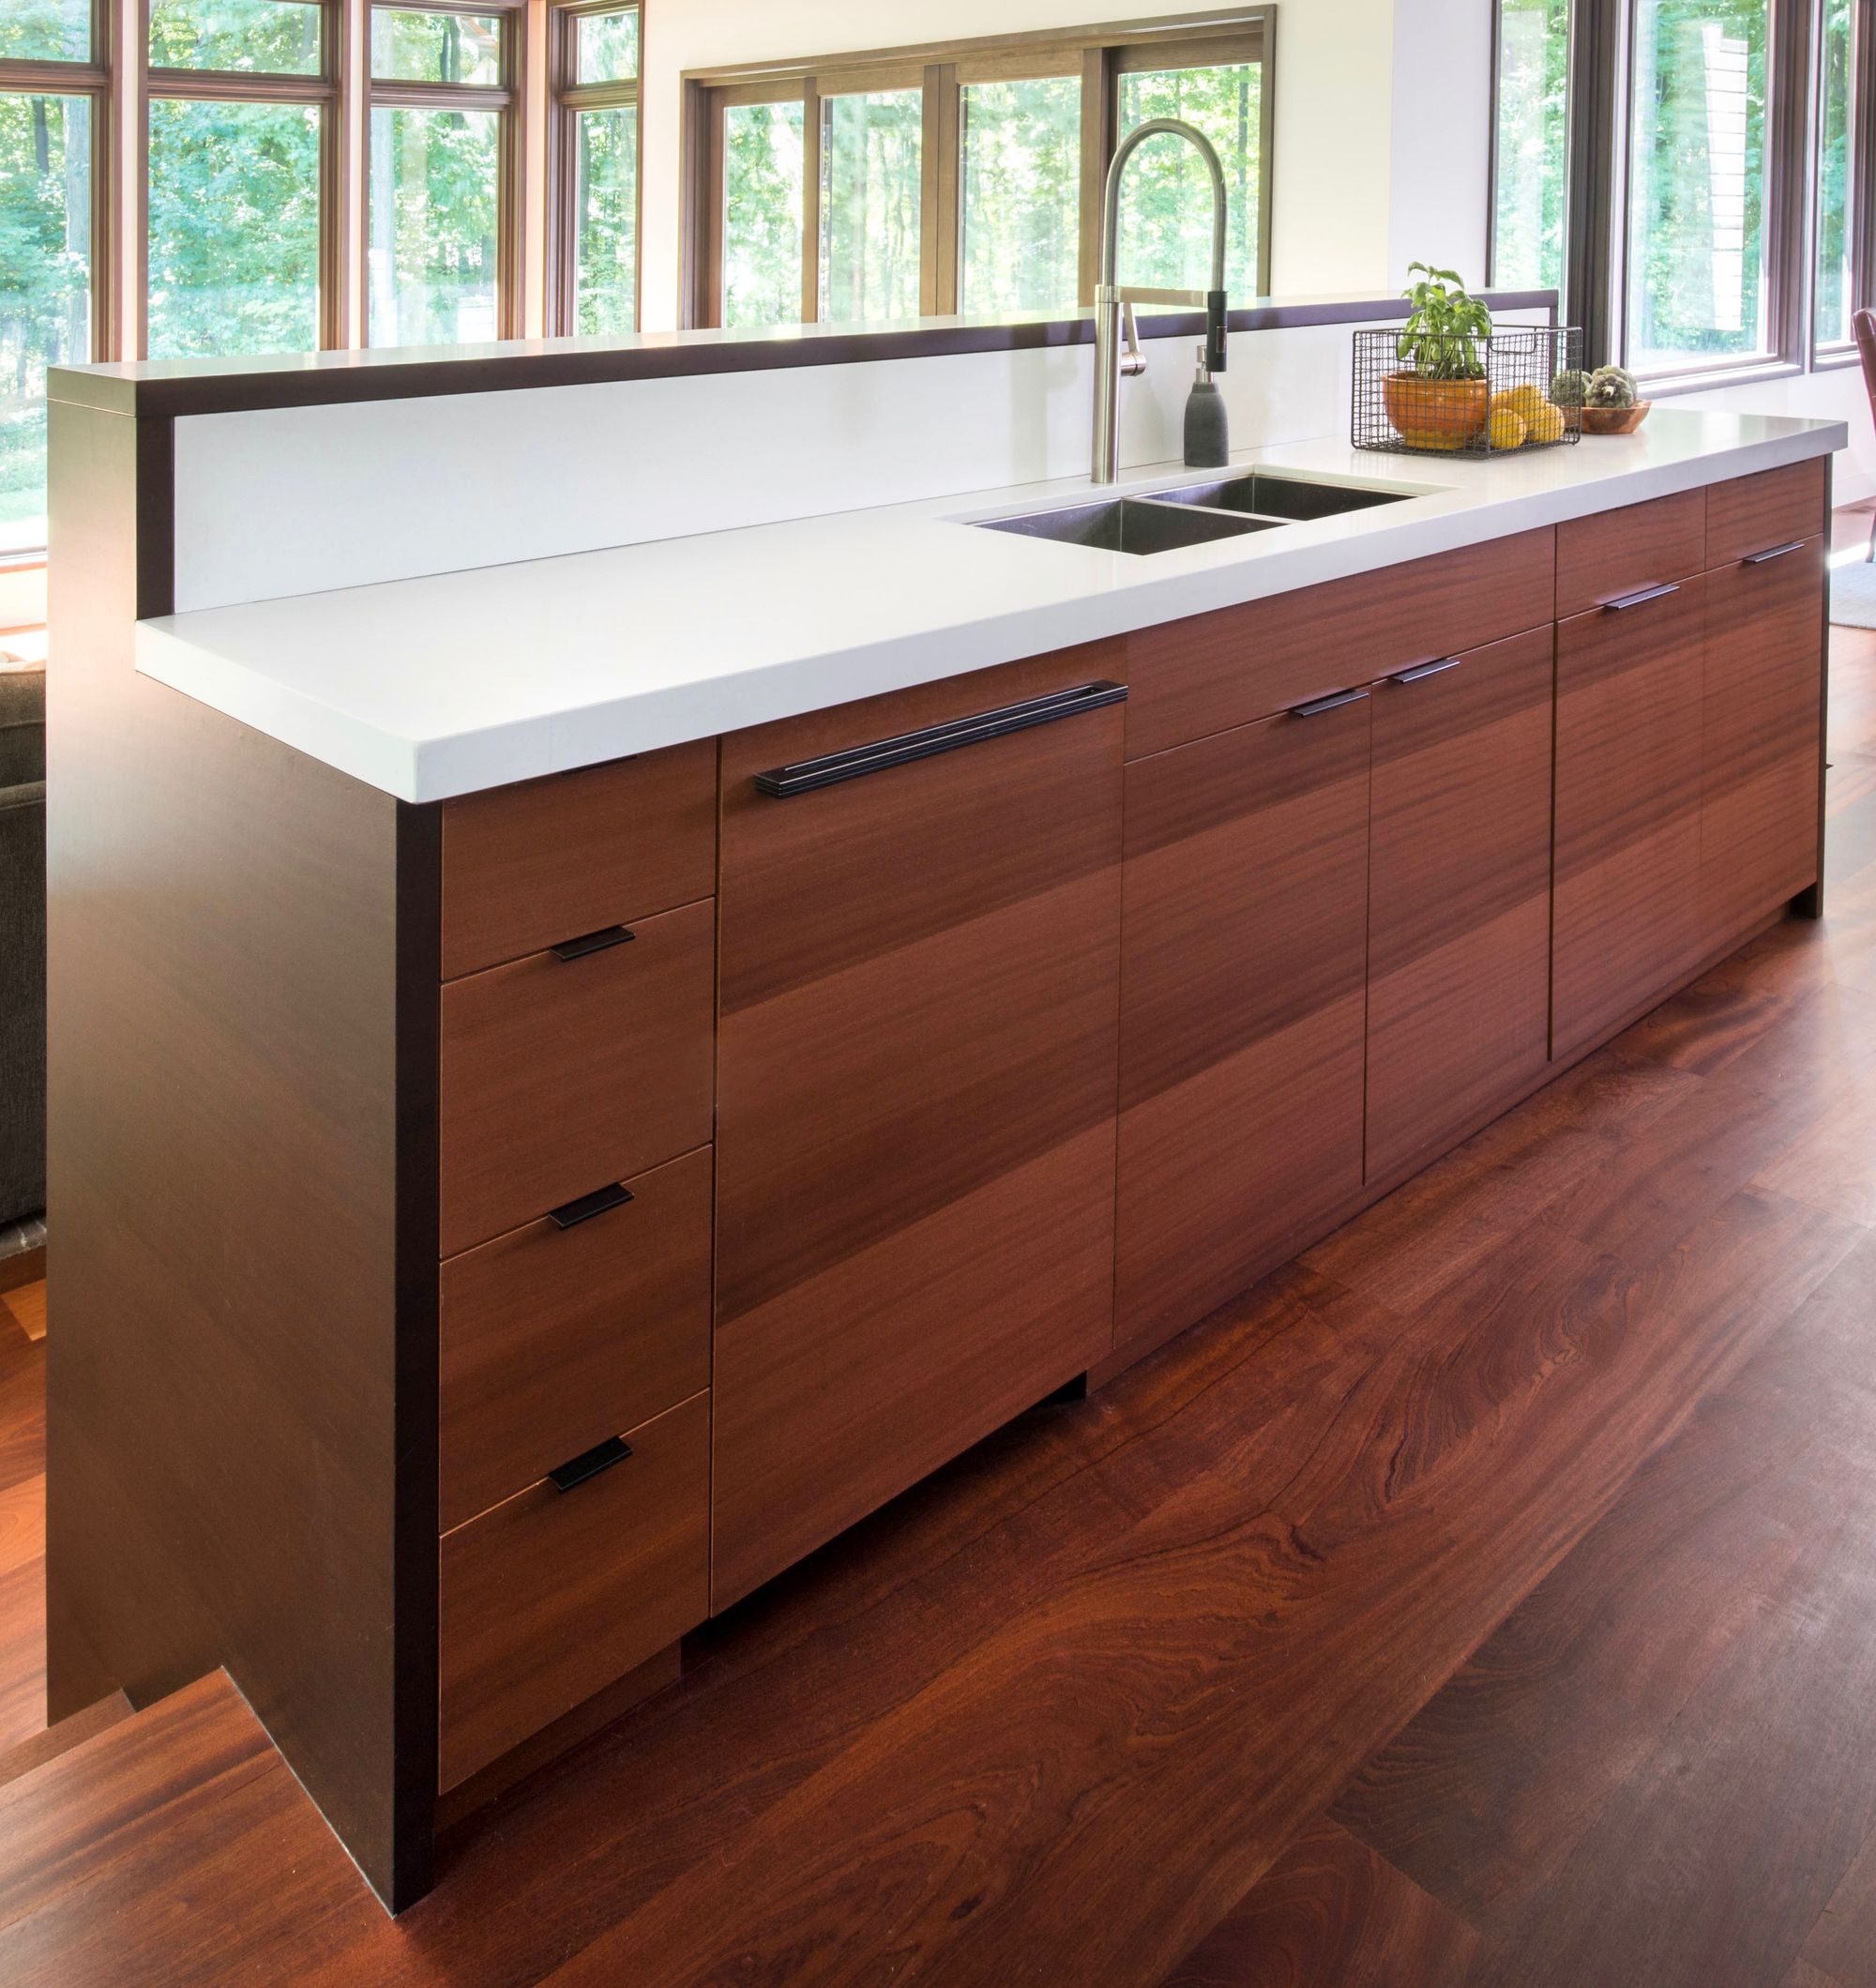 These sapele wood cabinets blend seamlessly with the ...